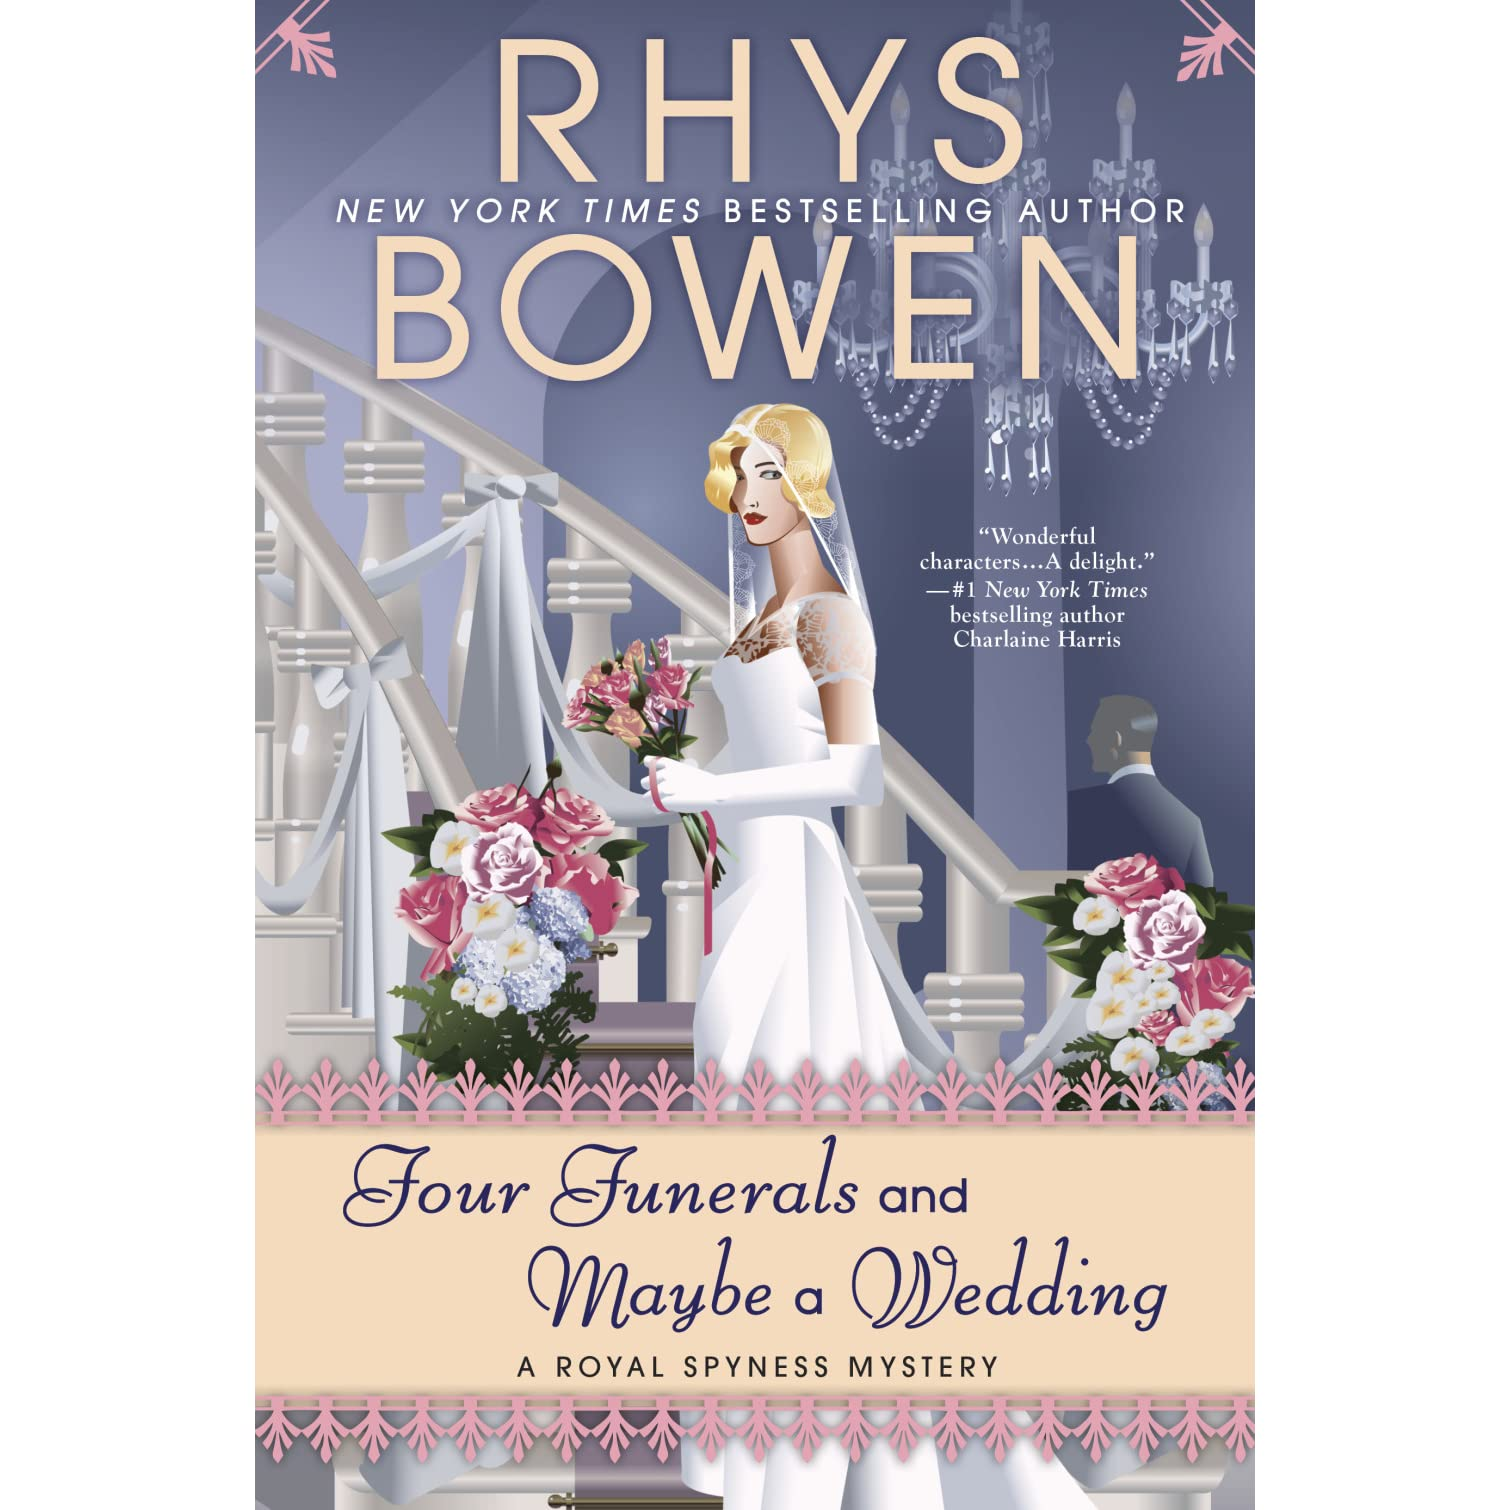 Four funerals and maybe a wedding by rhys bowen fandeluxe Choice Image